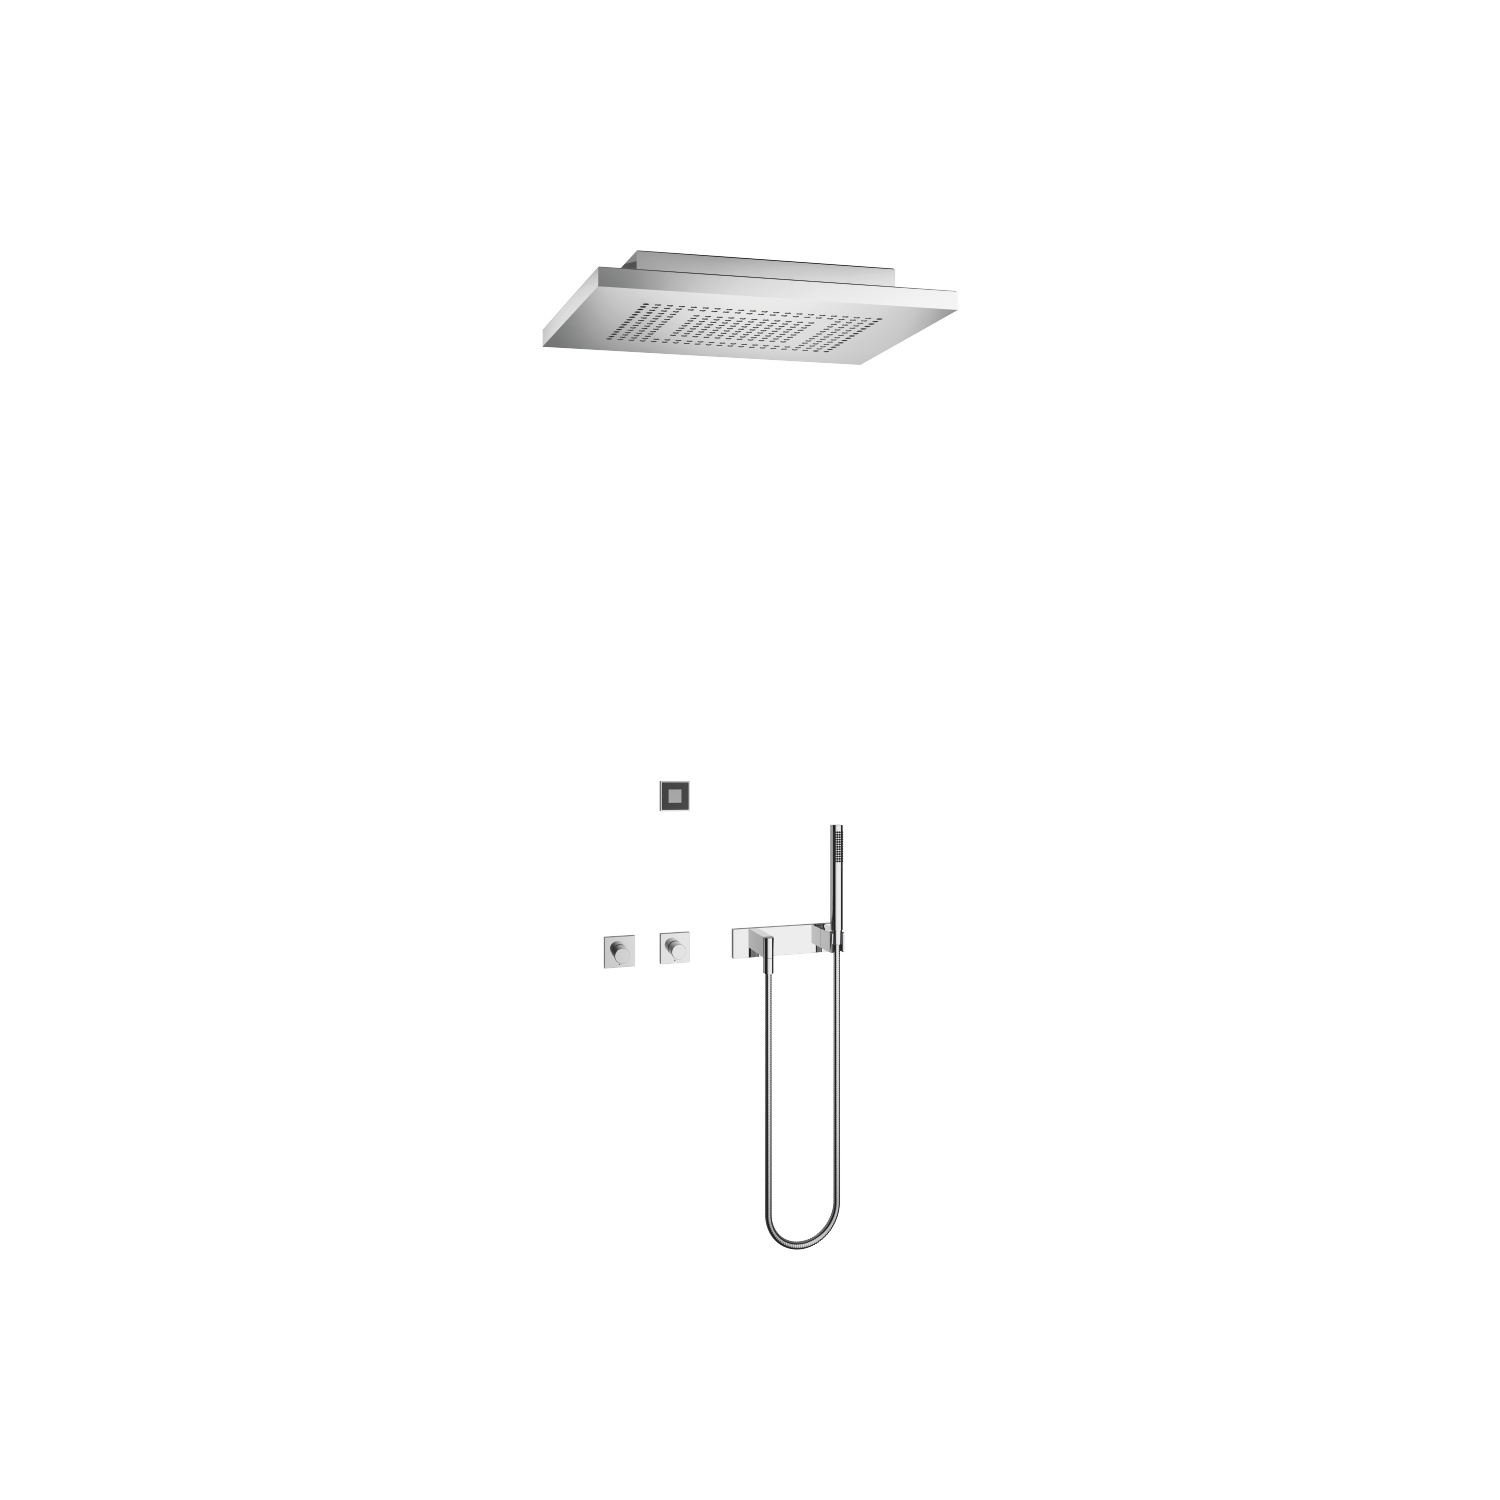 eUNIT SHOWERᴬᵀᵀ Smart Rain Shower - Polished stainless steel / chrome - 41 382 979-83